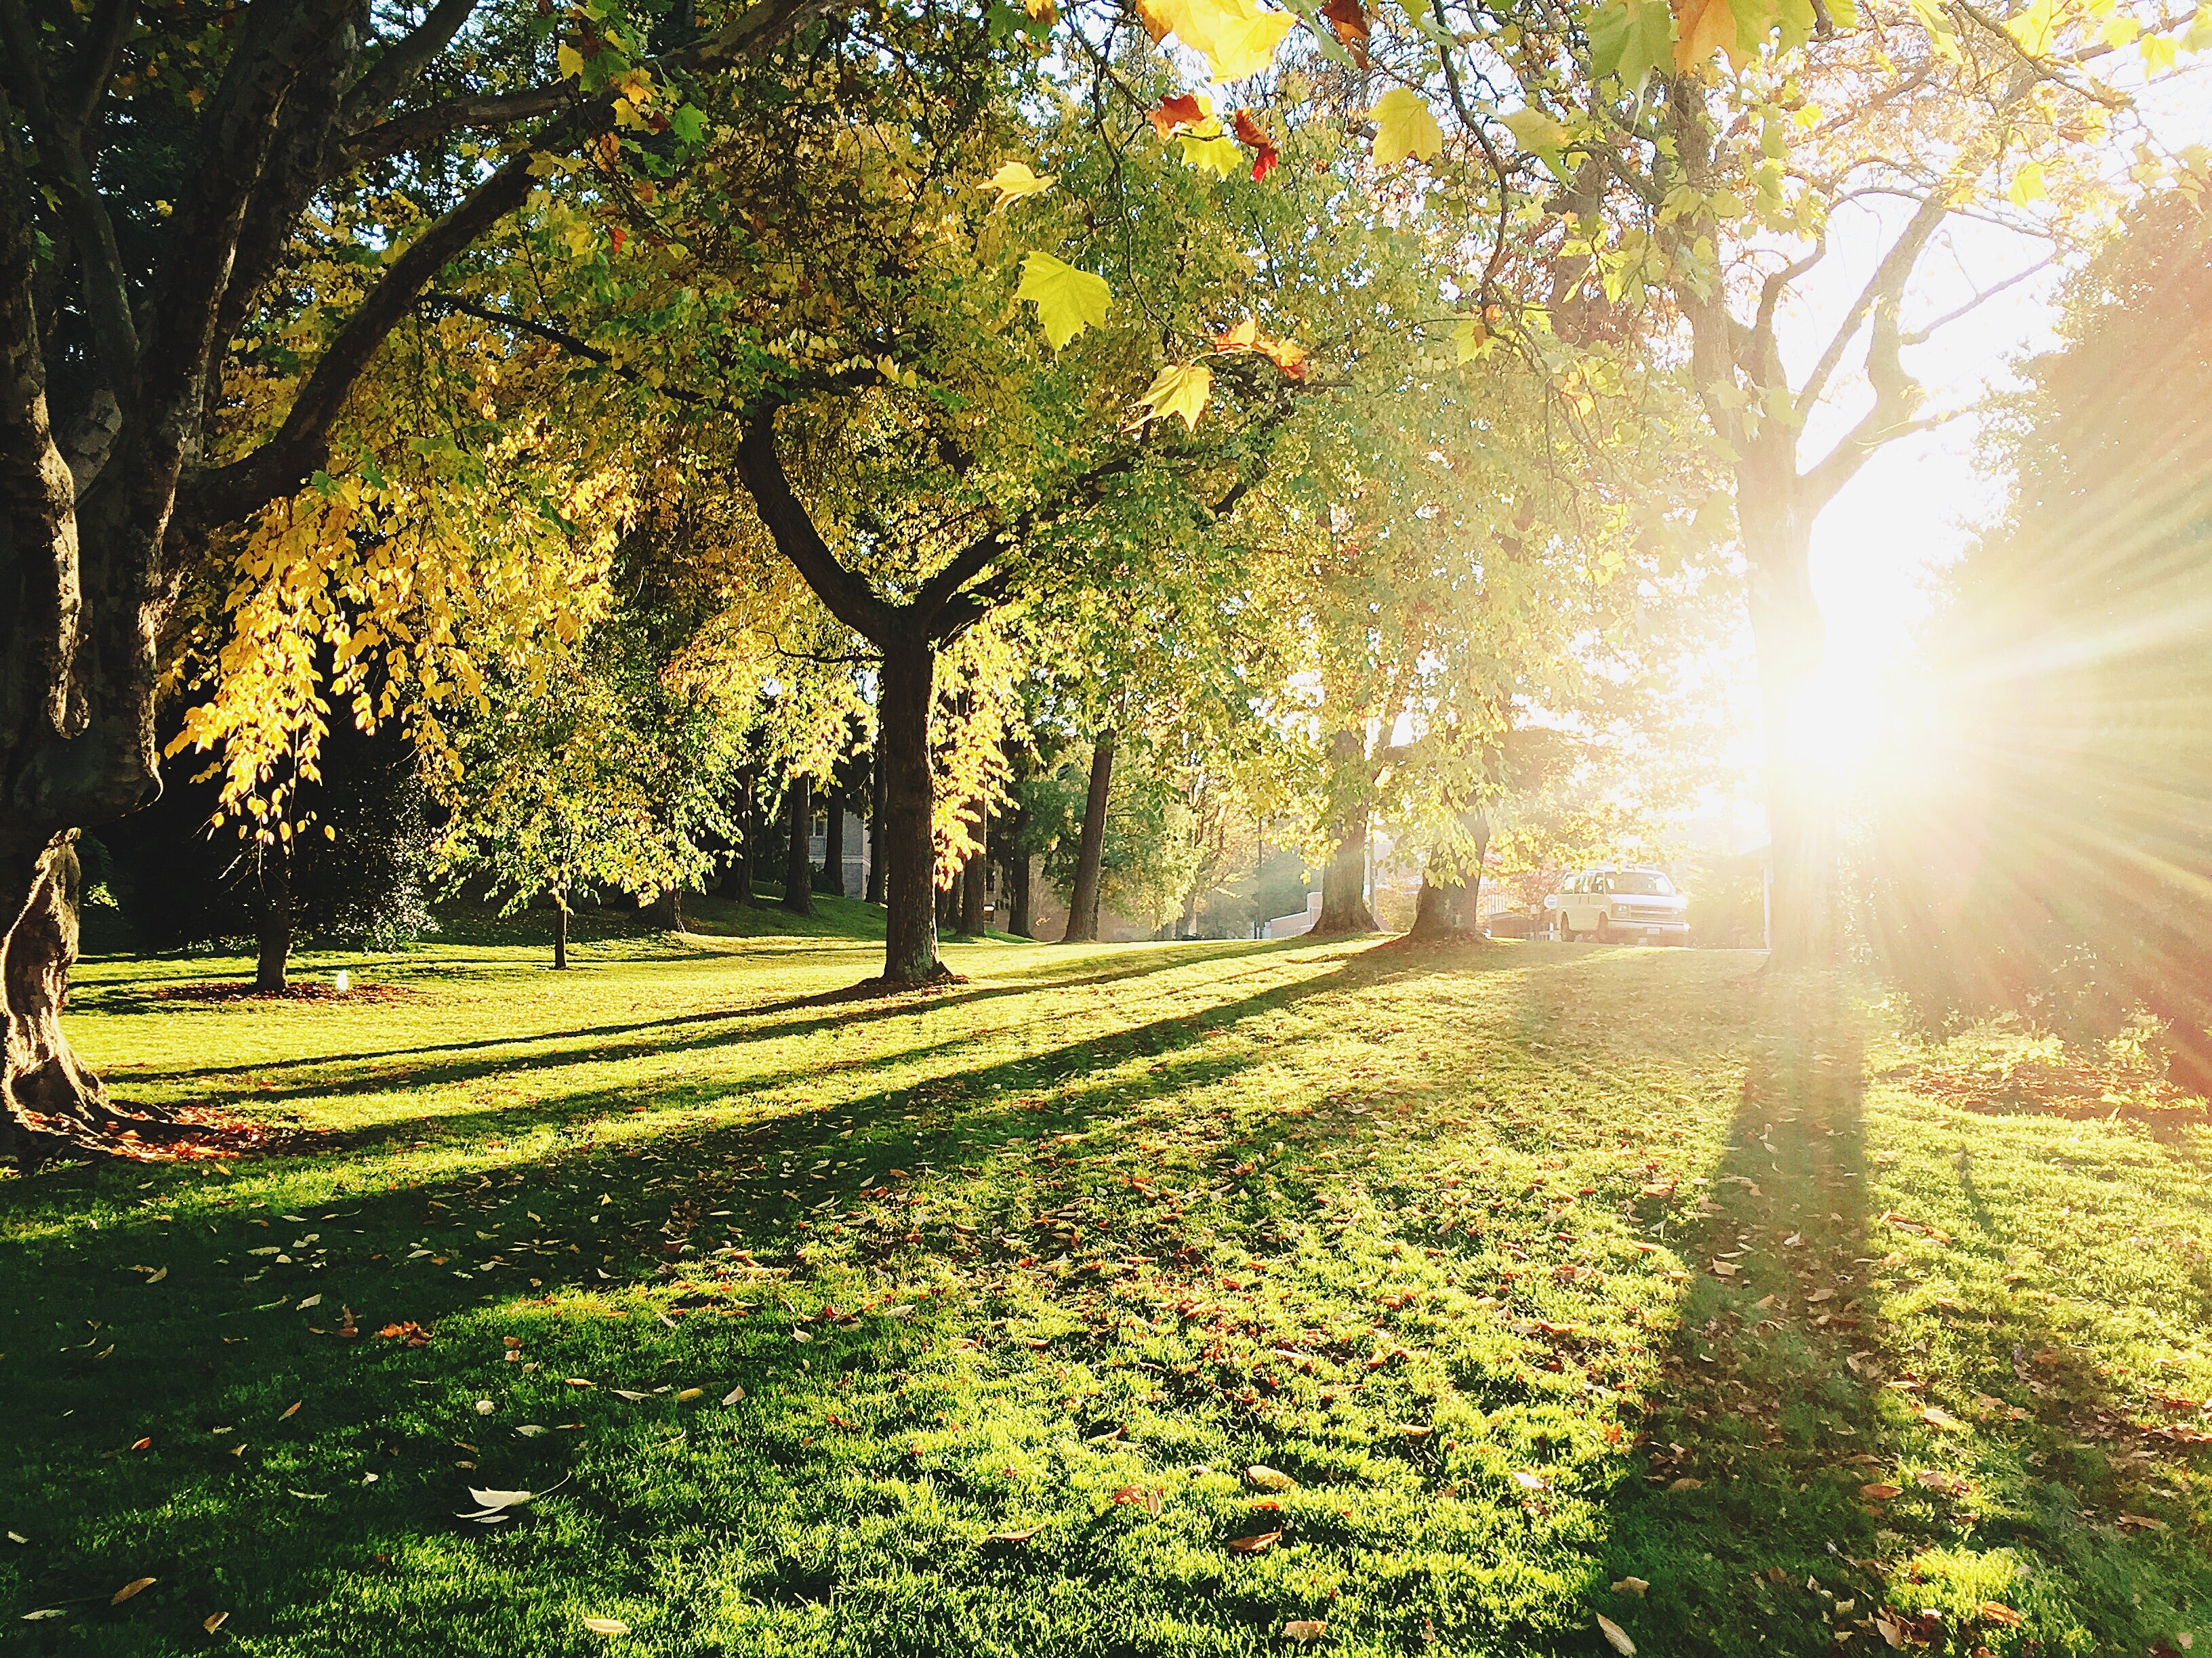 A grassy area with sunlight coming through the trees in Bellingham